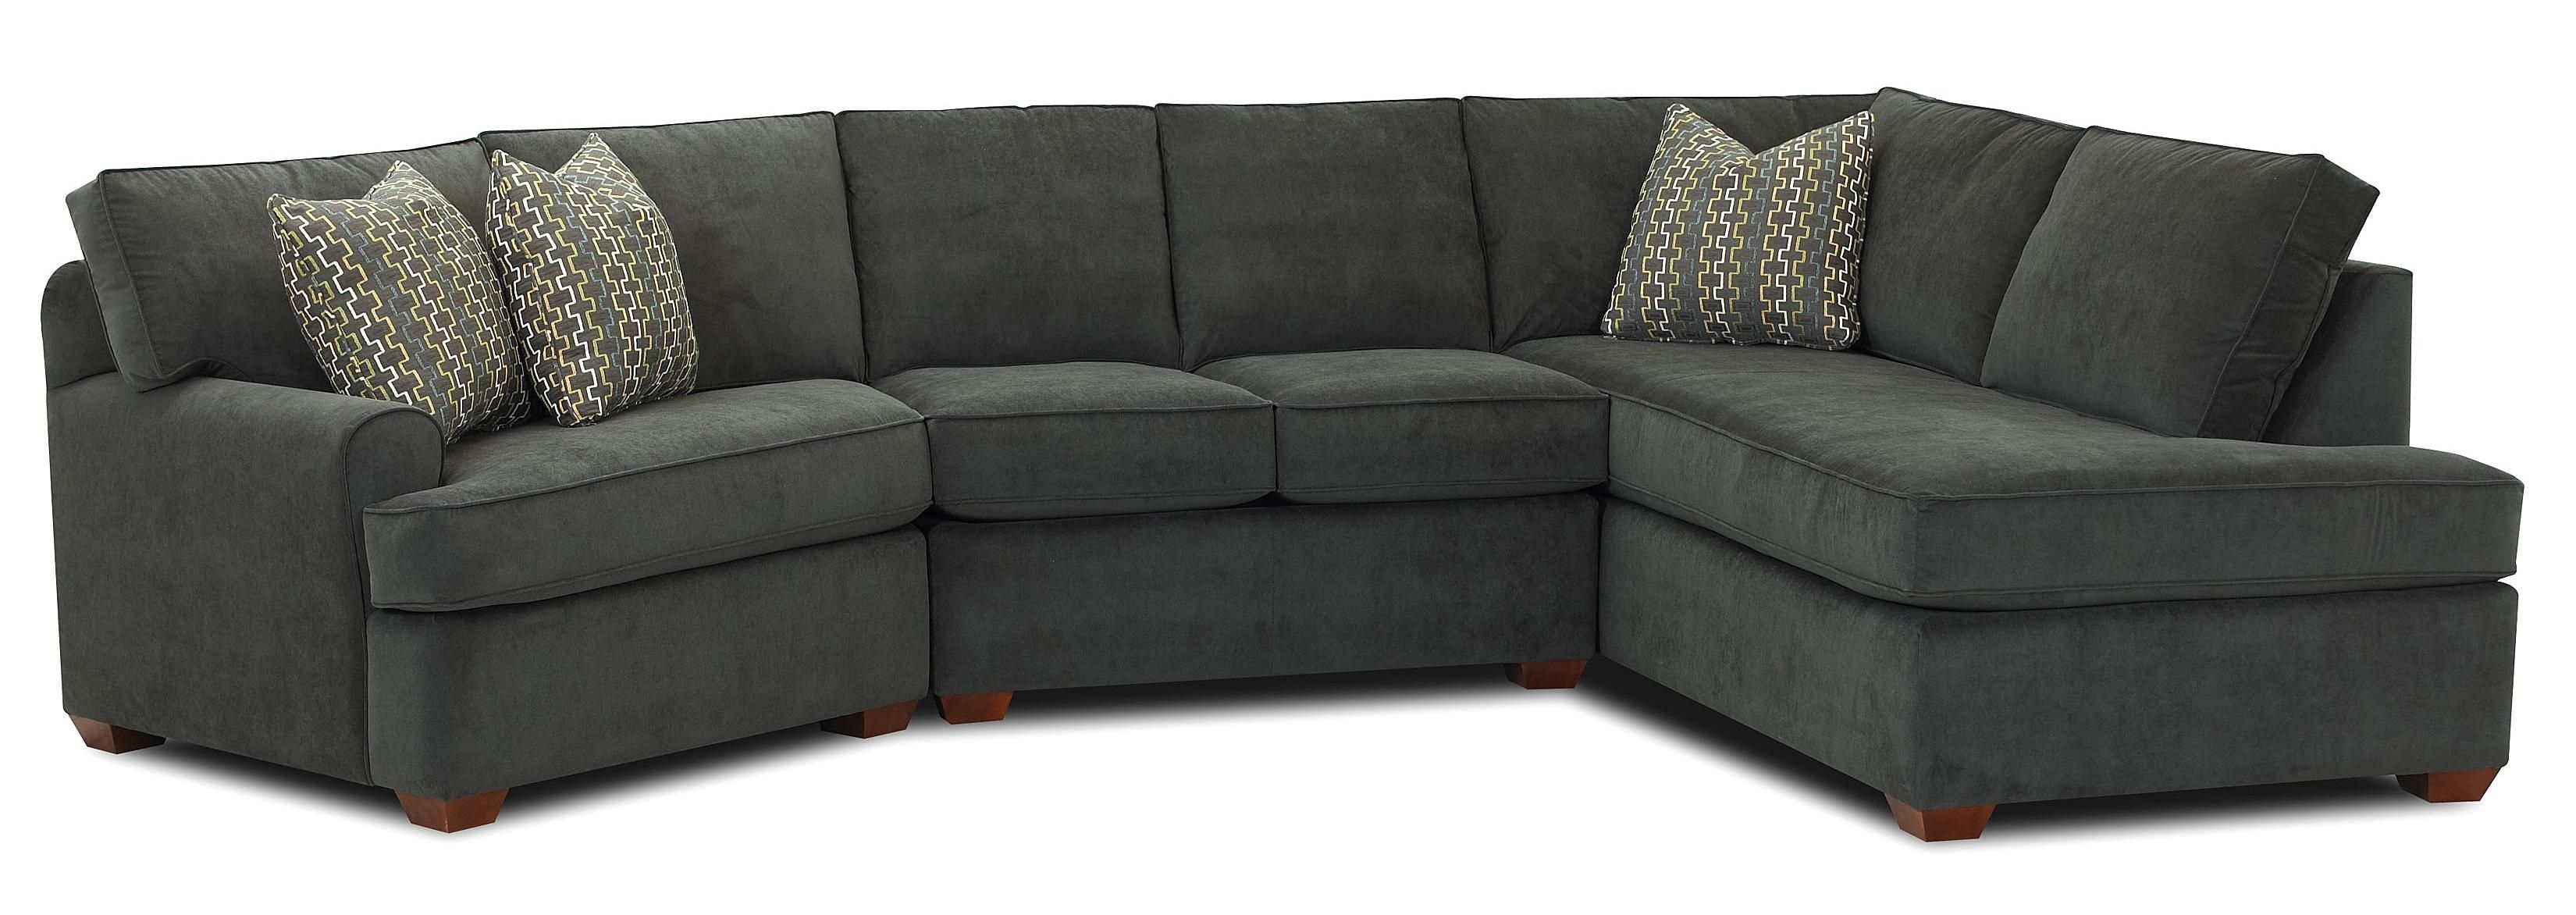 Right Angled Sectional Sofa | Http://ml2R | Pinterest Pertaining To Sectional Sofas At Brampton (View 2 of 10)